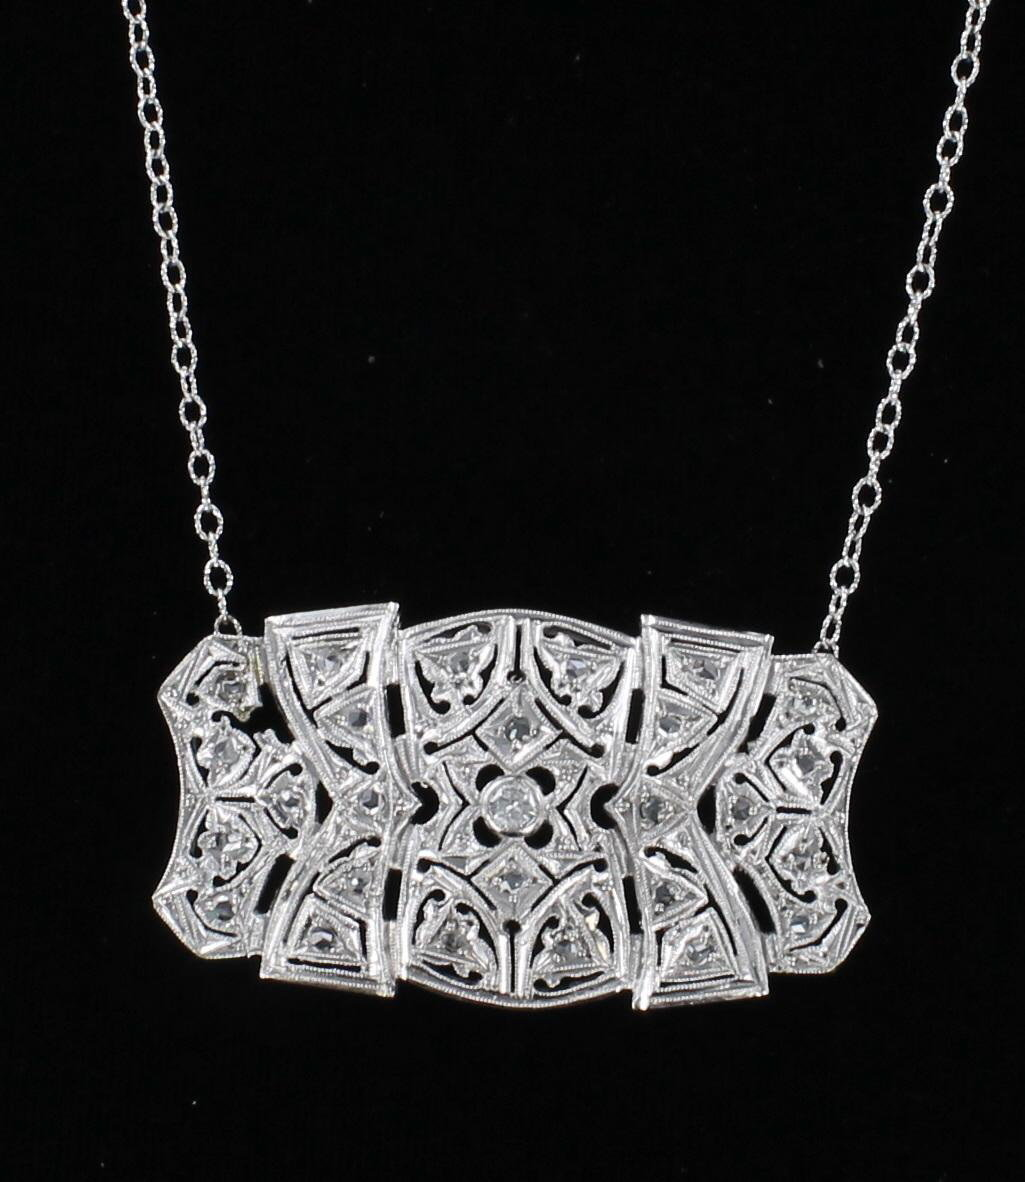 18KT ART DECO DIAMOND NECKLACE